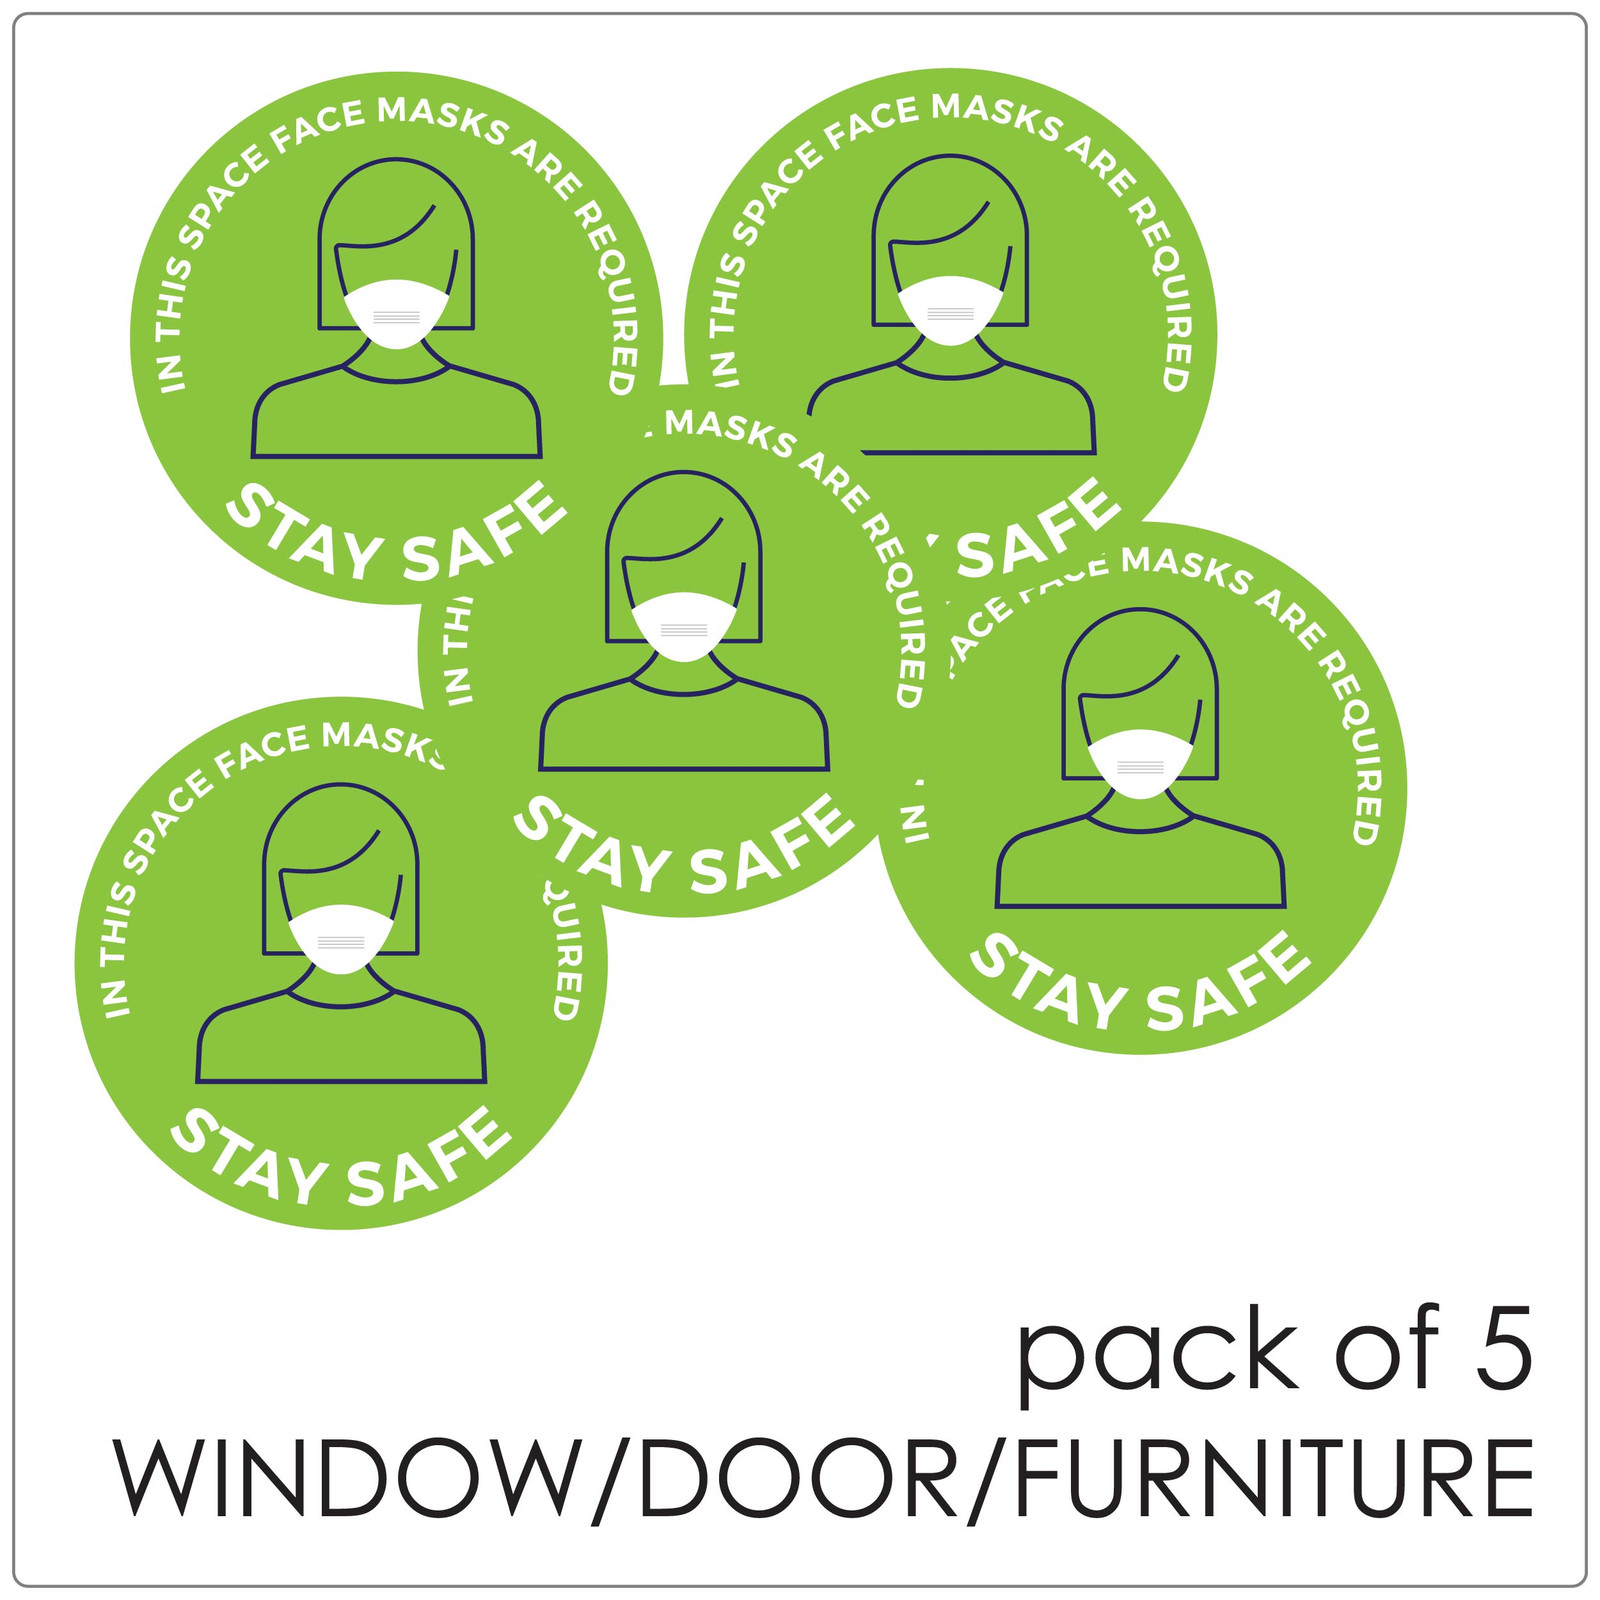 COVID mask DOOR sticker,  green, pack of 5 Self-adhesive Corona virus WINDOW sticker to encourage mask wearing.